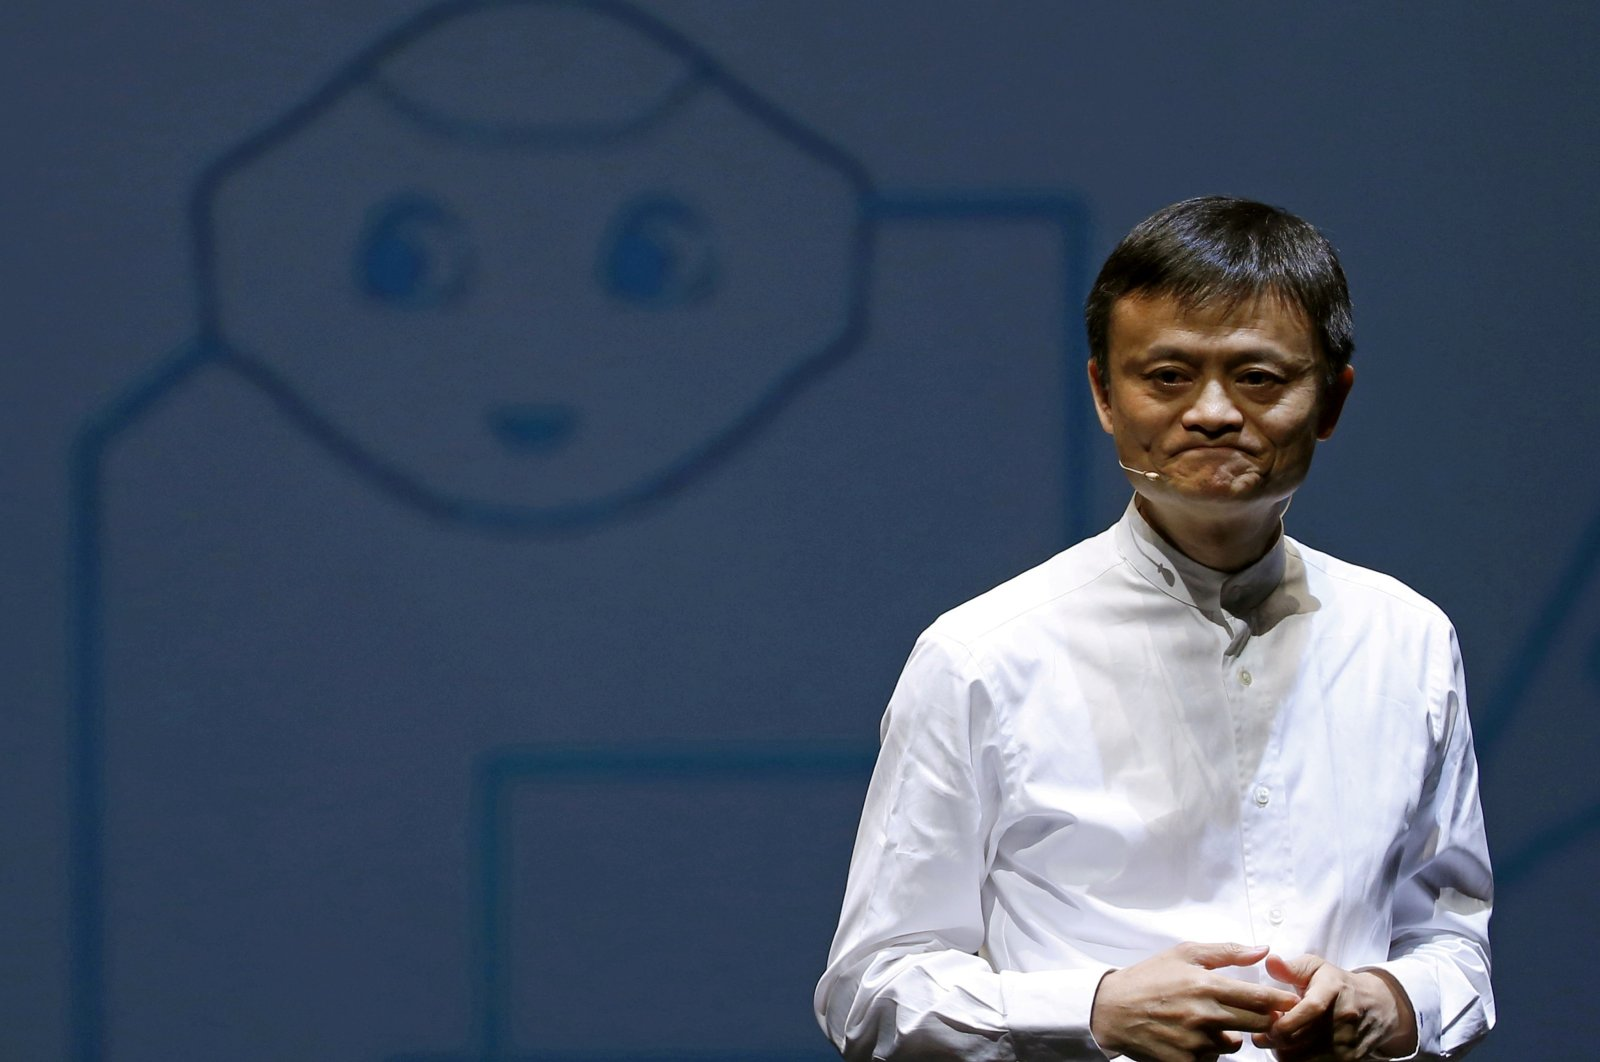 """Jack Ma, founder and executive chairperson of China's Alibaba Group, speaks in front of a picture of SoftBank's human-like robot named """"Pepper"""" during a news conference in Chiba, Japan, June 18, 2015. (Reuters Photo)"""